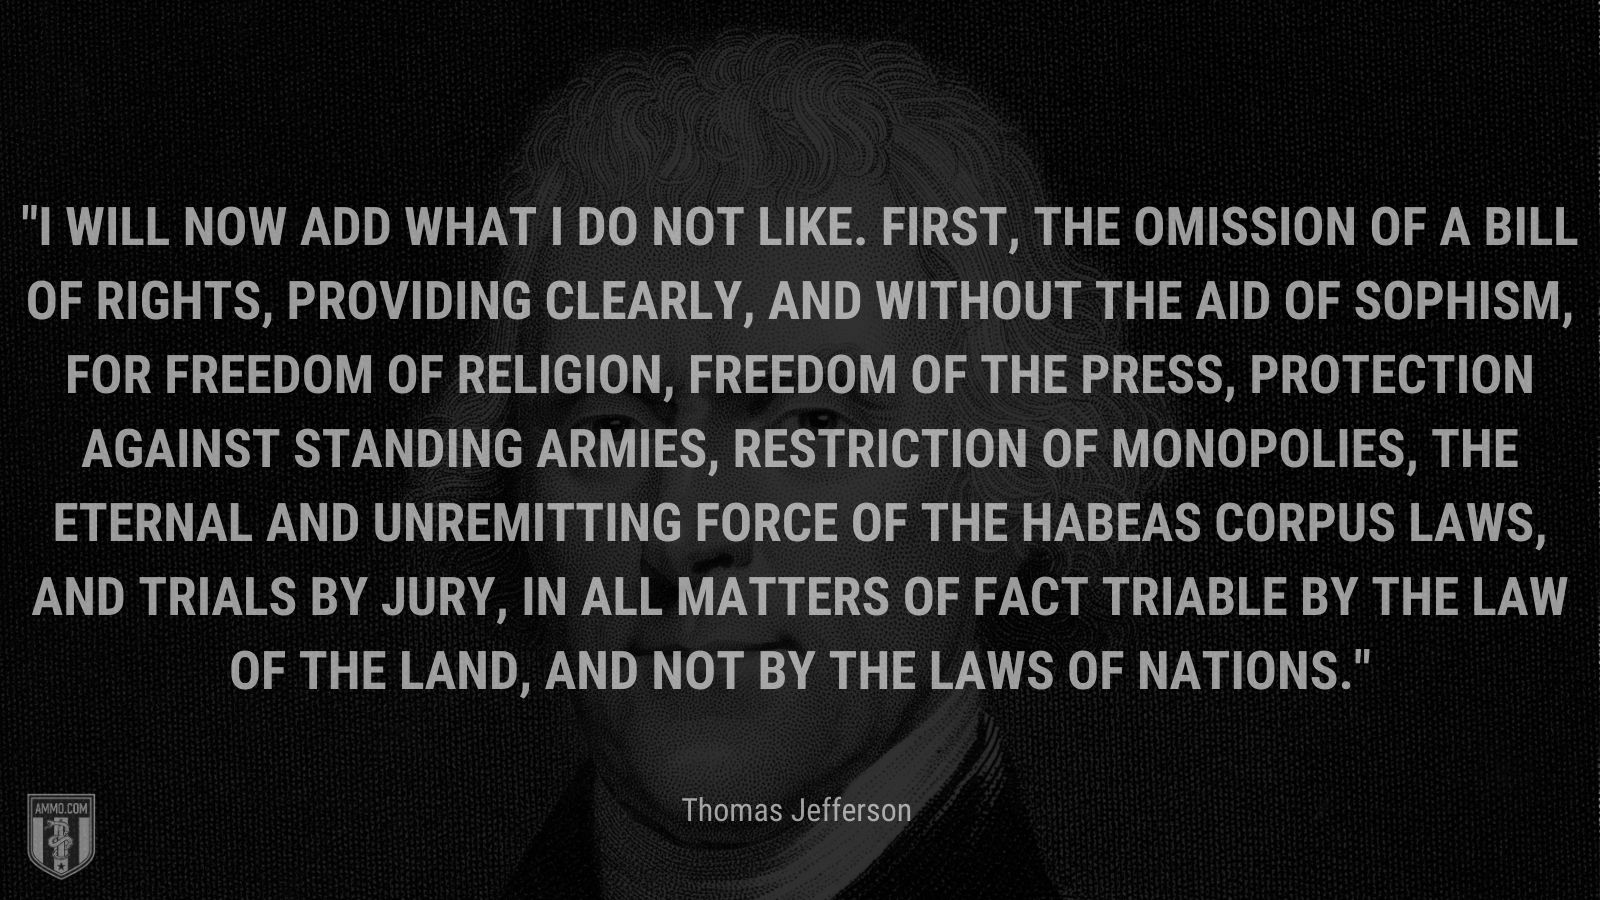 """""""I will now add what I do not like. First, the omission of a bill of rights, providing clearly, and without the aid of sophism, for freedom of religion, freedom of the press, protection against standing armies, restriction of monopolies, the eternal and unremitting force of the habeas corpus laws, and trials by jury, in all matters of fact triable by the law of the land, and not by the laws of nations."""" - Thomas Jefferson"""